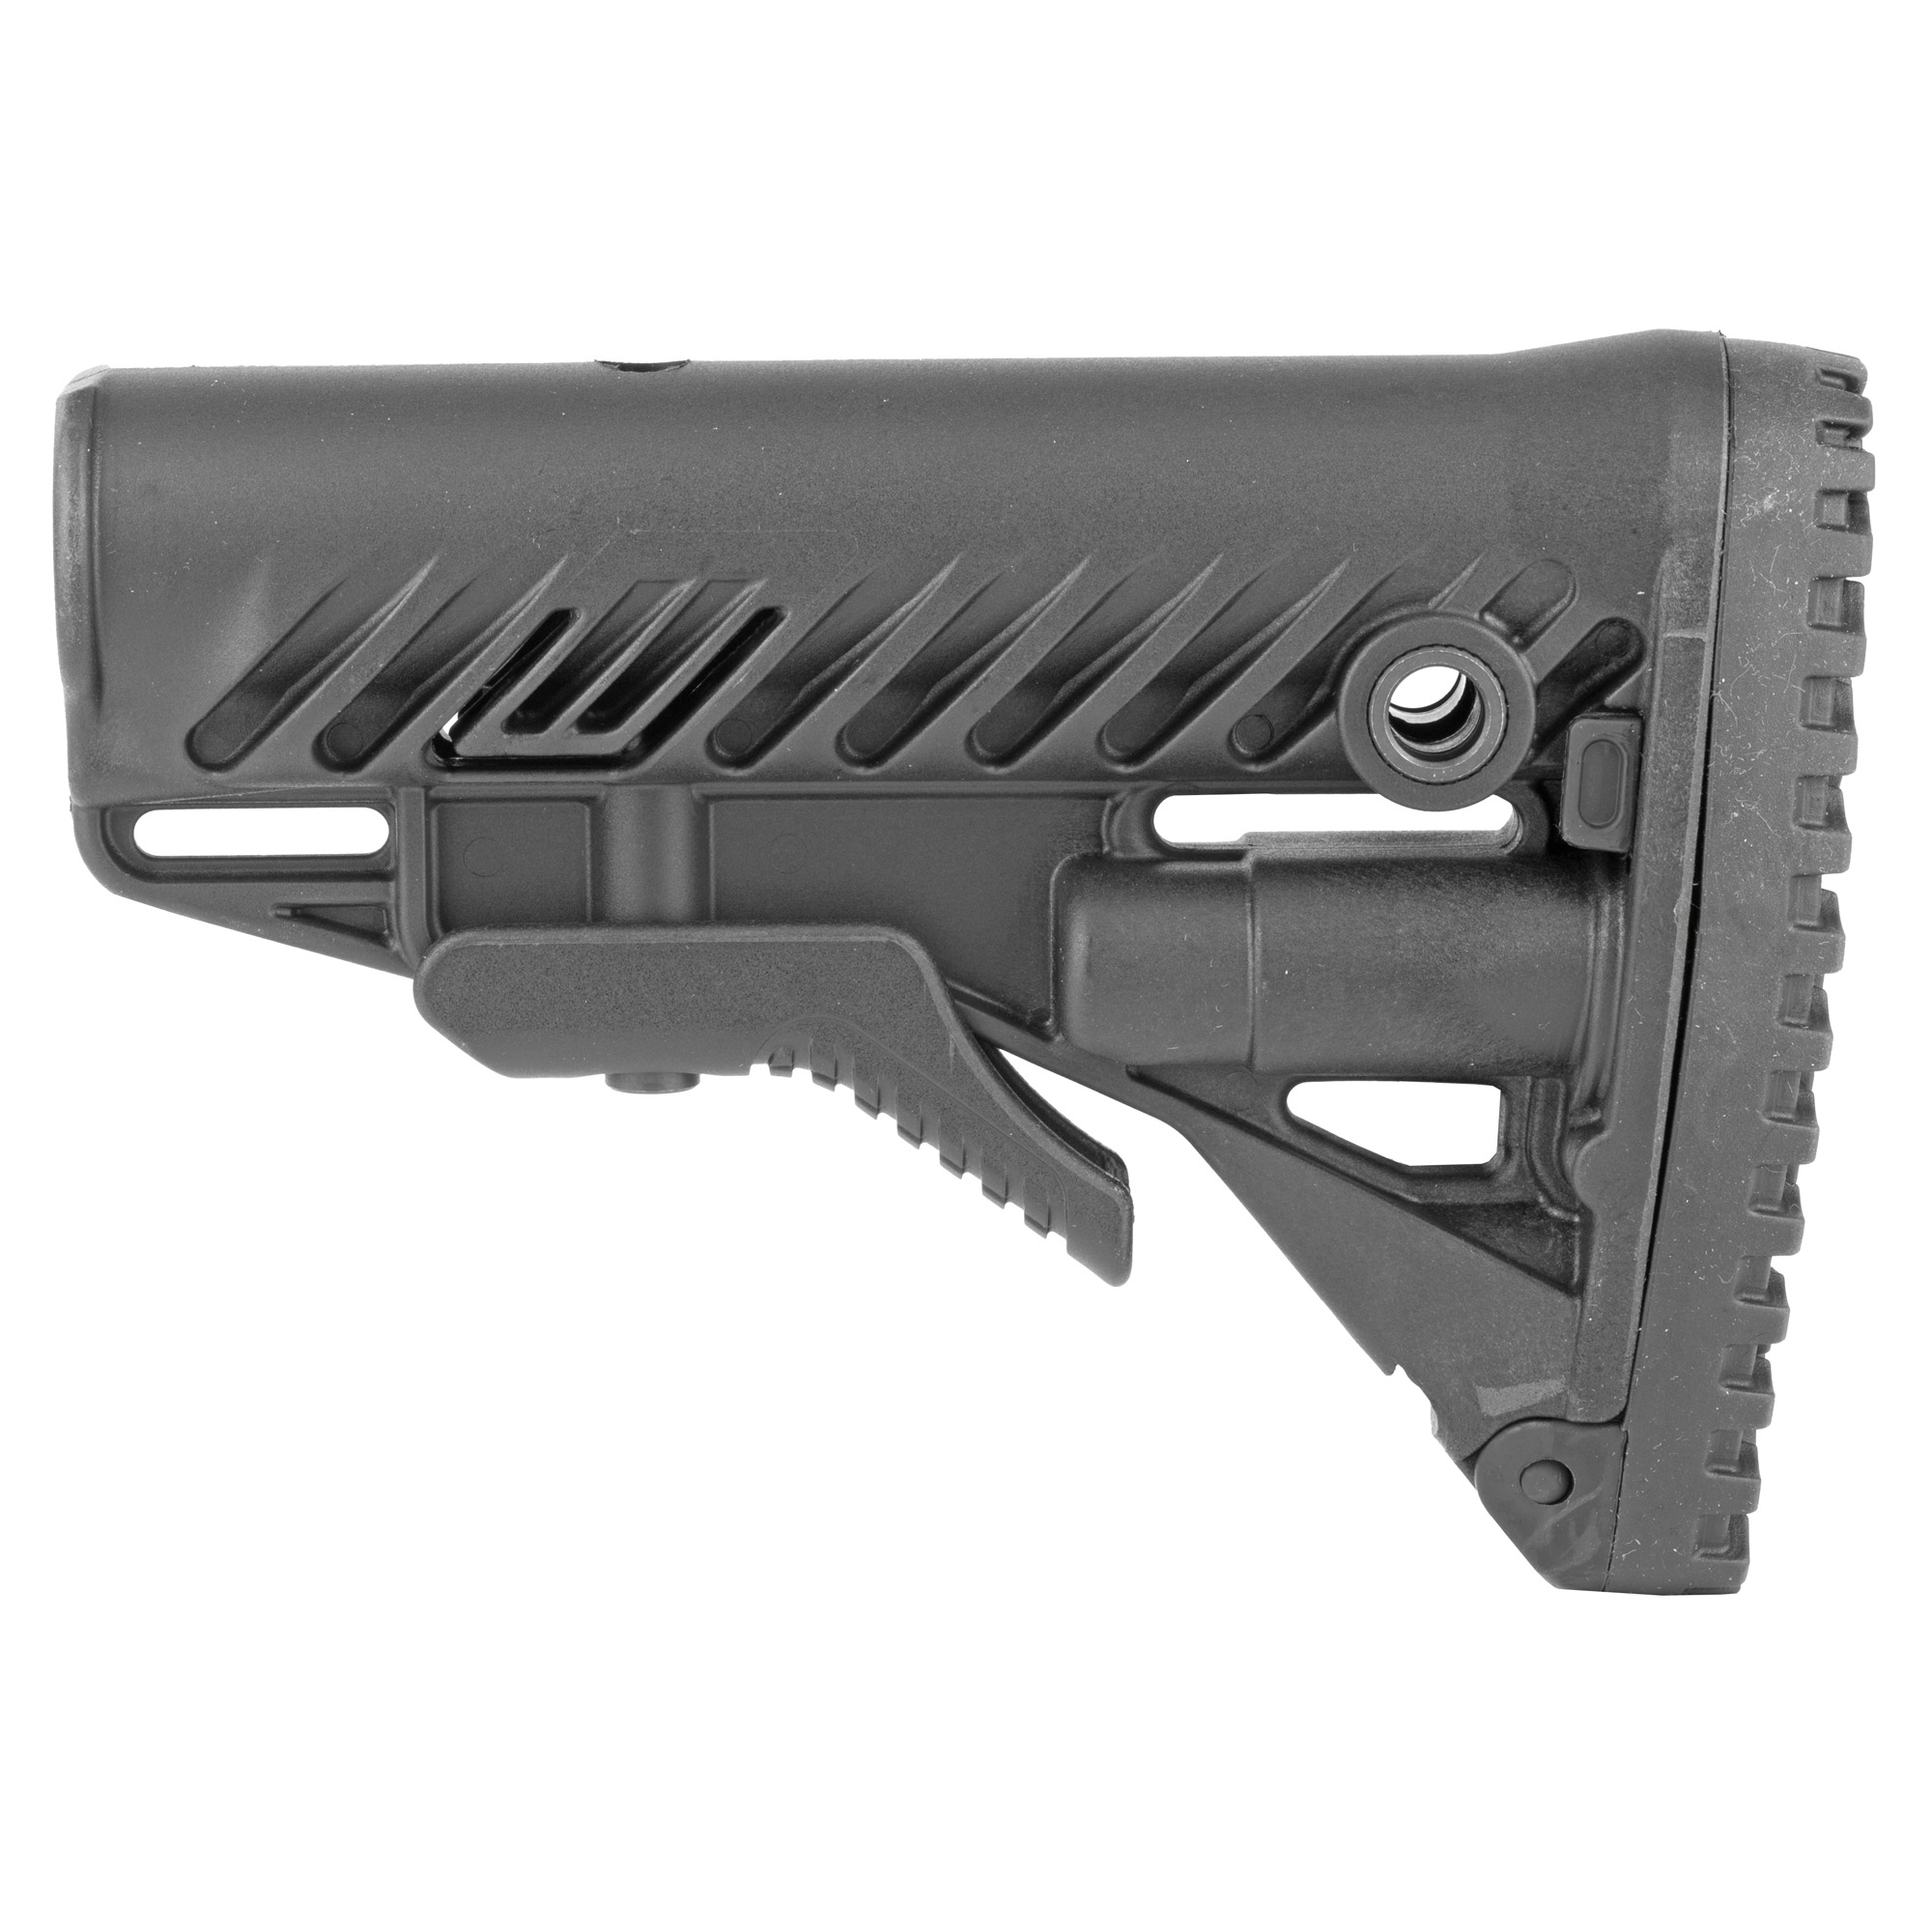 "The GLR-16 Buttstock for your AR15/M16 provides you with enhanced versatility with it's stock extension and optional adjustable Cheek Rest. It has a uniquely designed rubber butt pad for fast and stable shoulder positioning. There are three integrated slots for sling attachment"" one in the front and two at the rear and two ambidextrous metal quick release rear sling mount points."